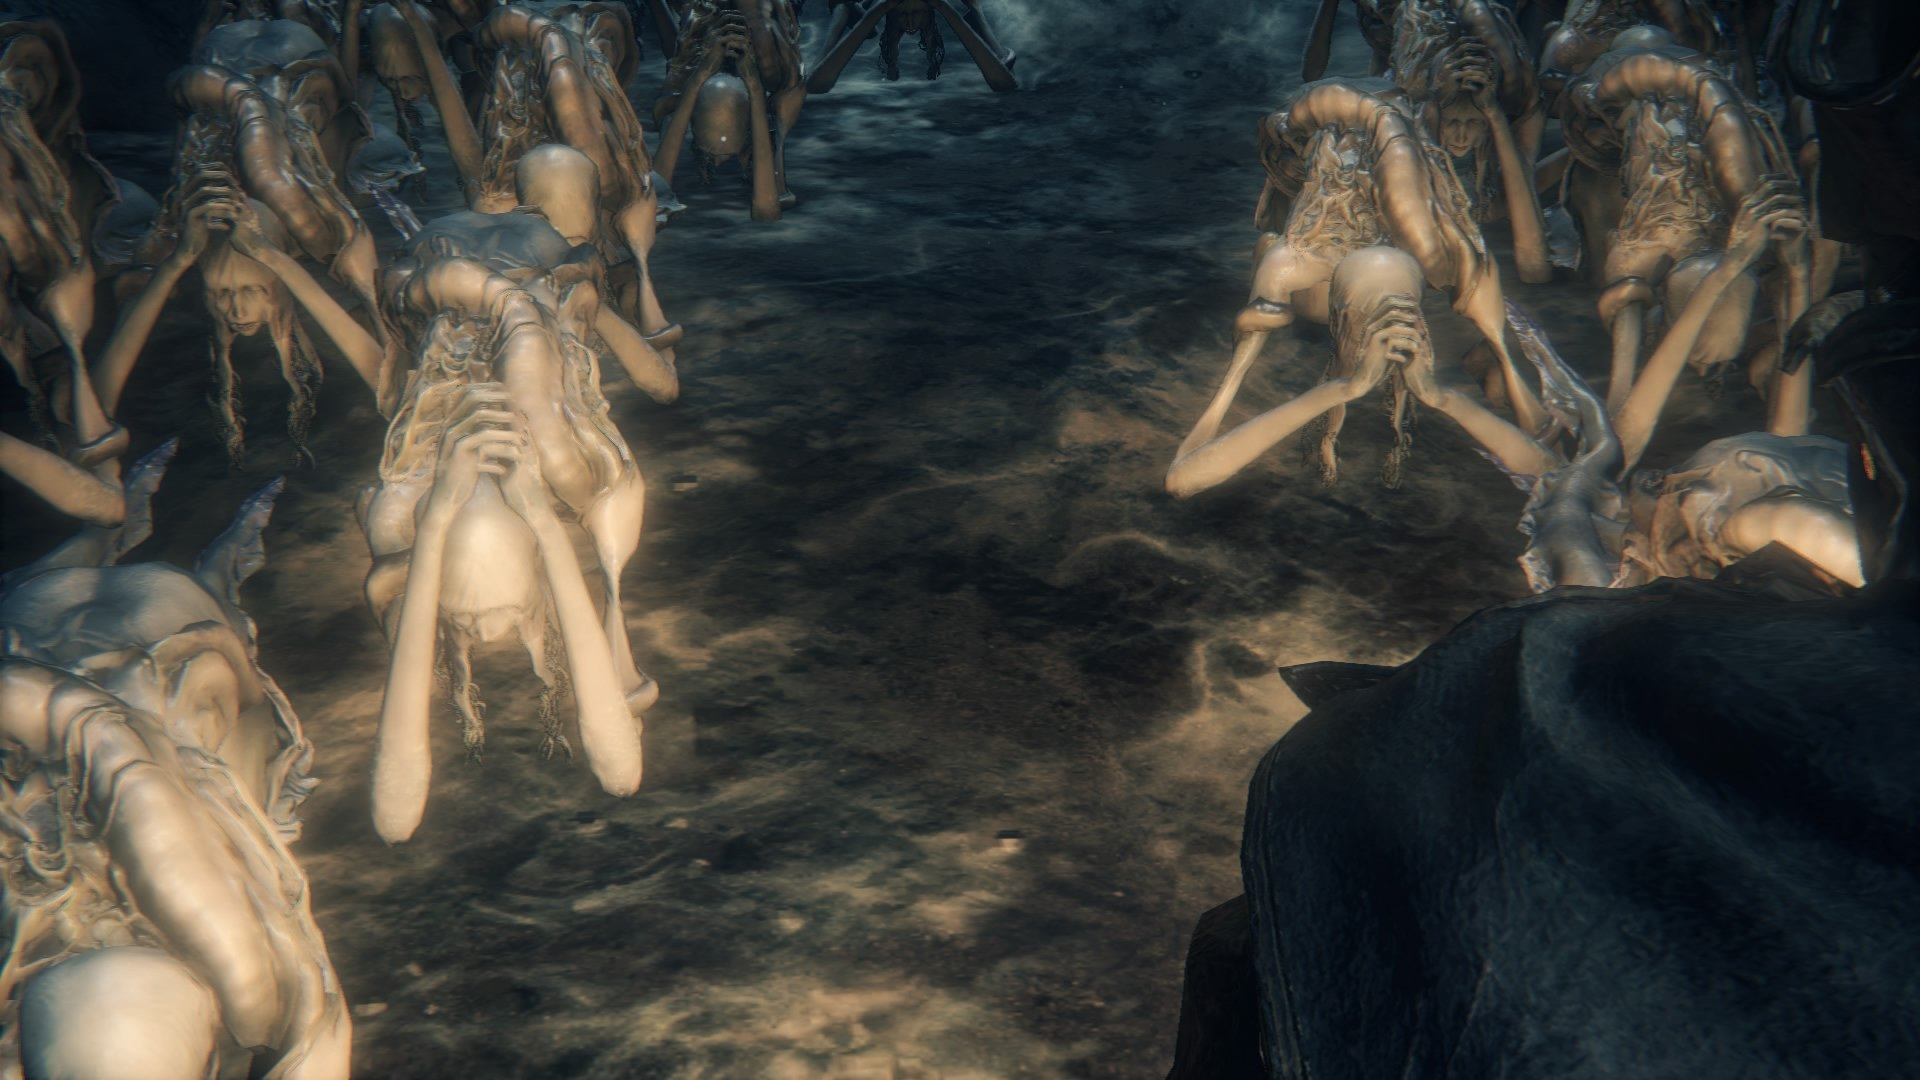 kos mother bloodborne wiki a congregation of snail women can be found praying in the cove near her corpse